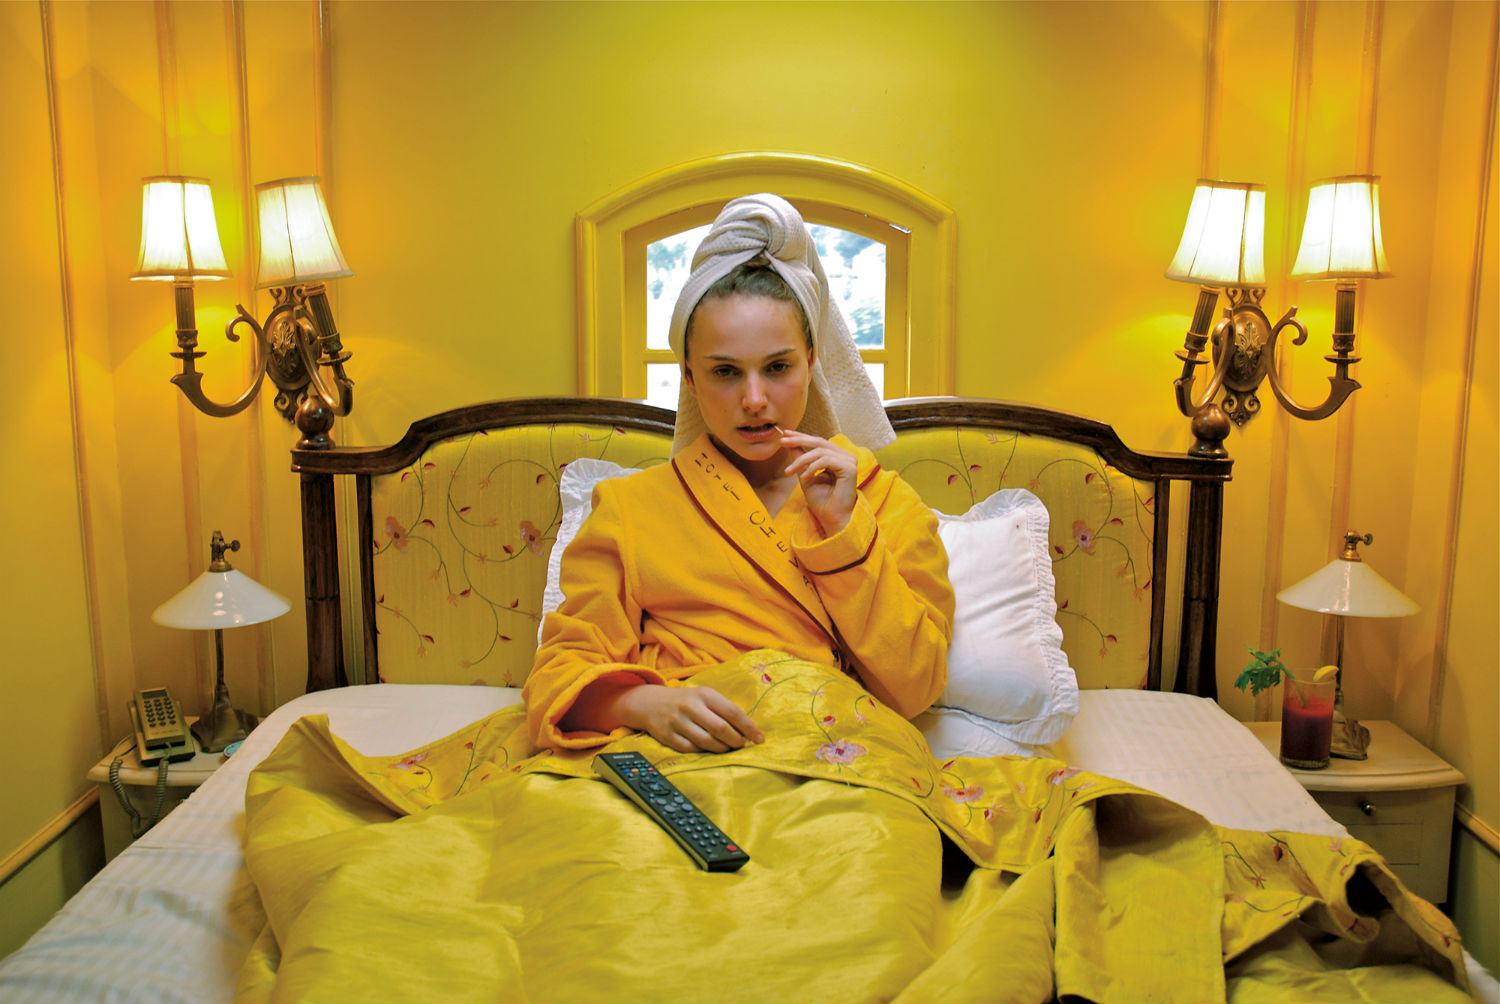 wes-anderson-darjeeling-limited-natalie-portman-yellow-gult-green-house